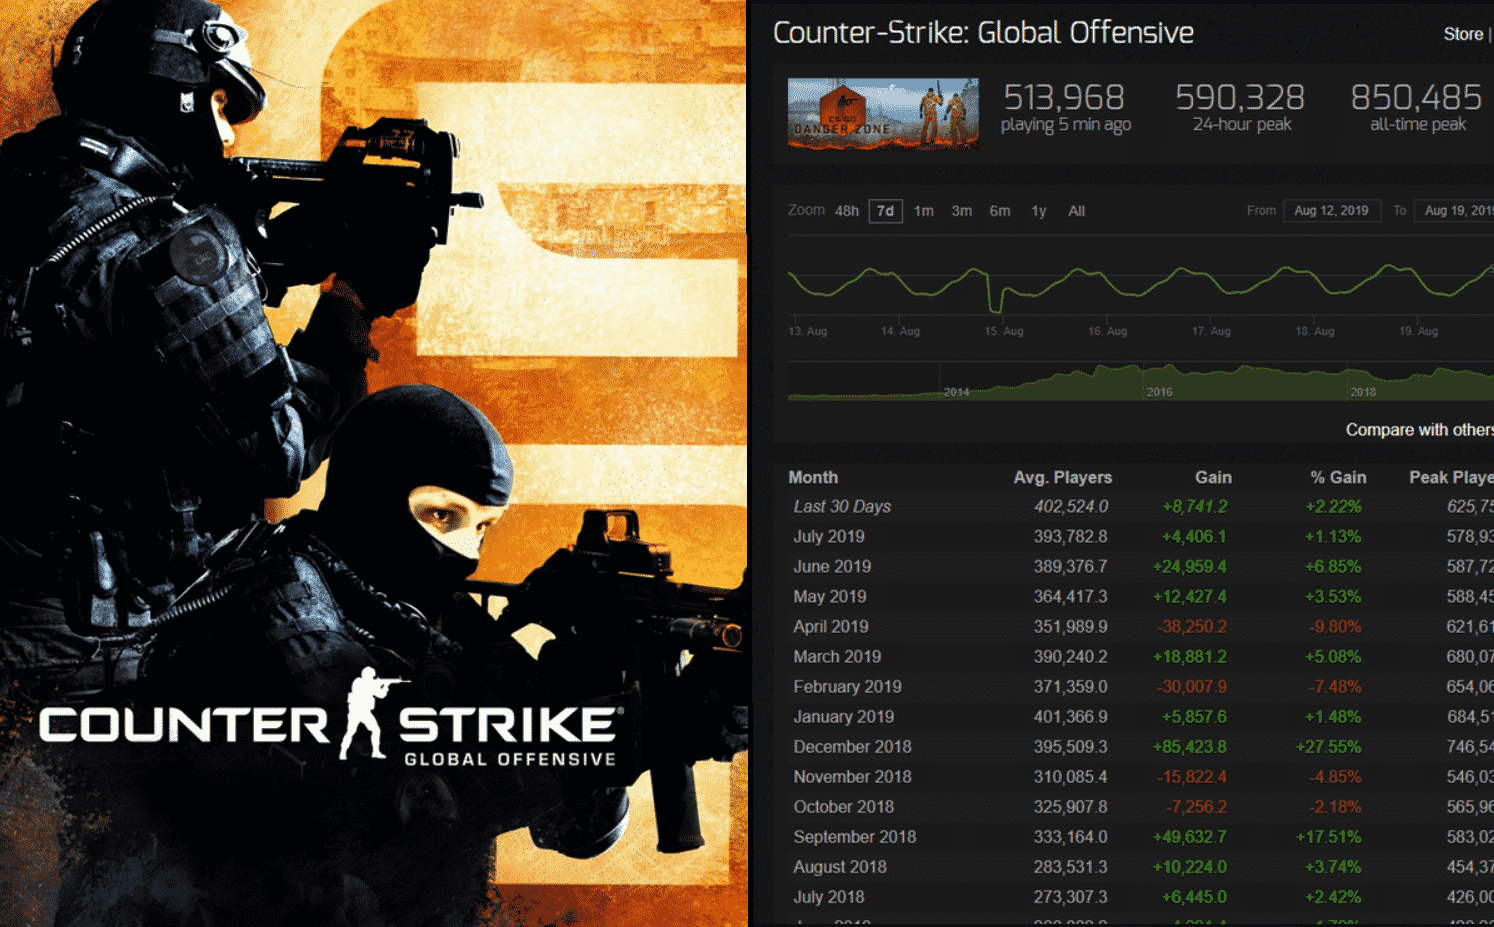 CSGO Reaches The Second Highest Number Of Average Players Ever